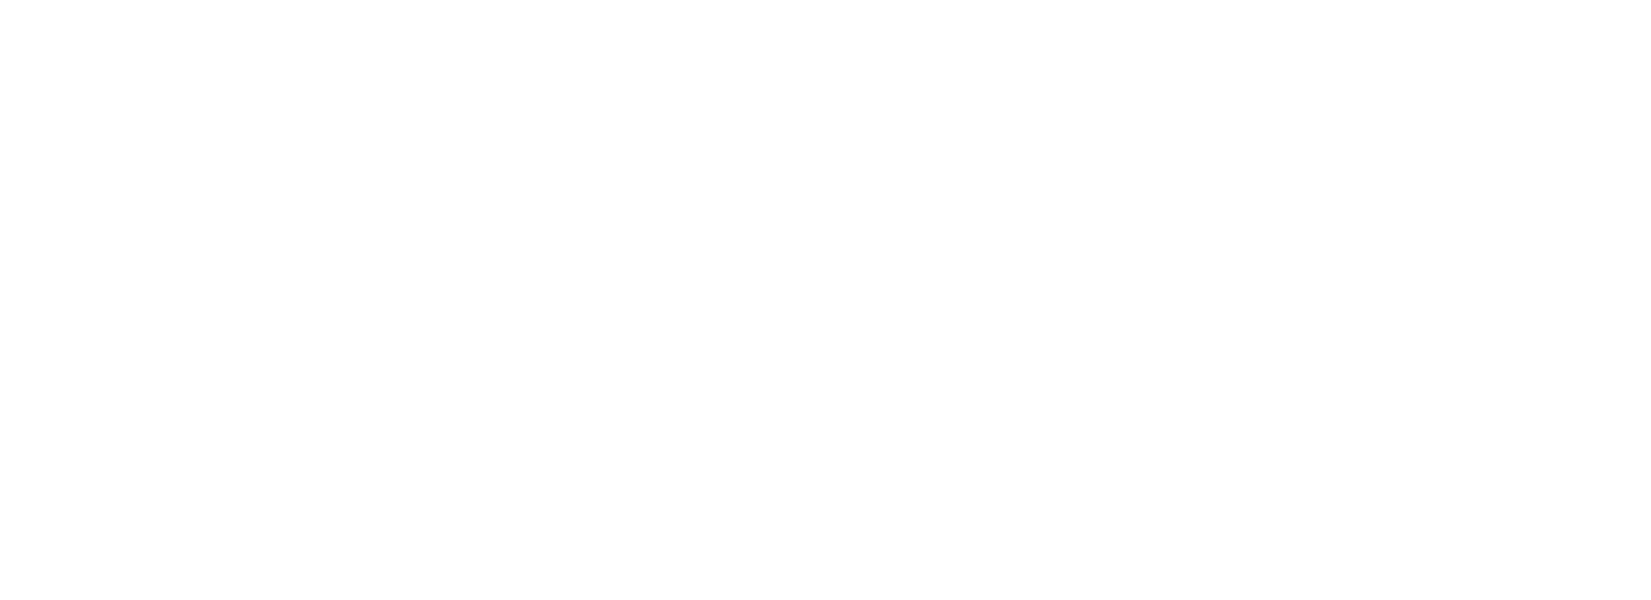 Danklefs Group